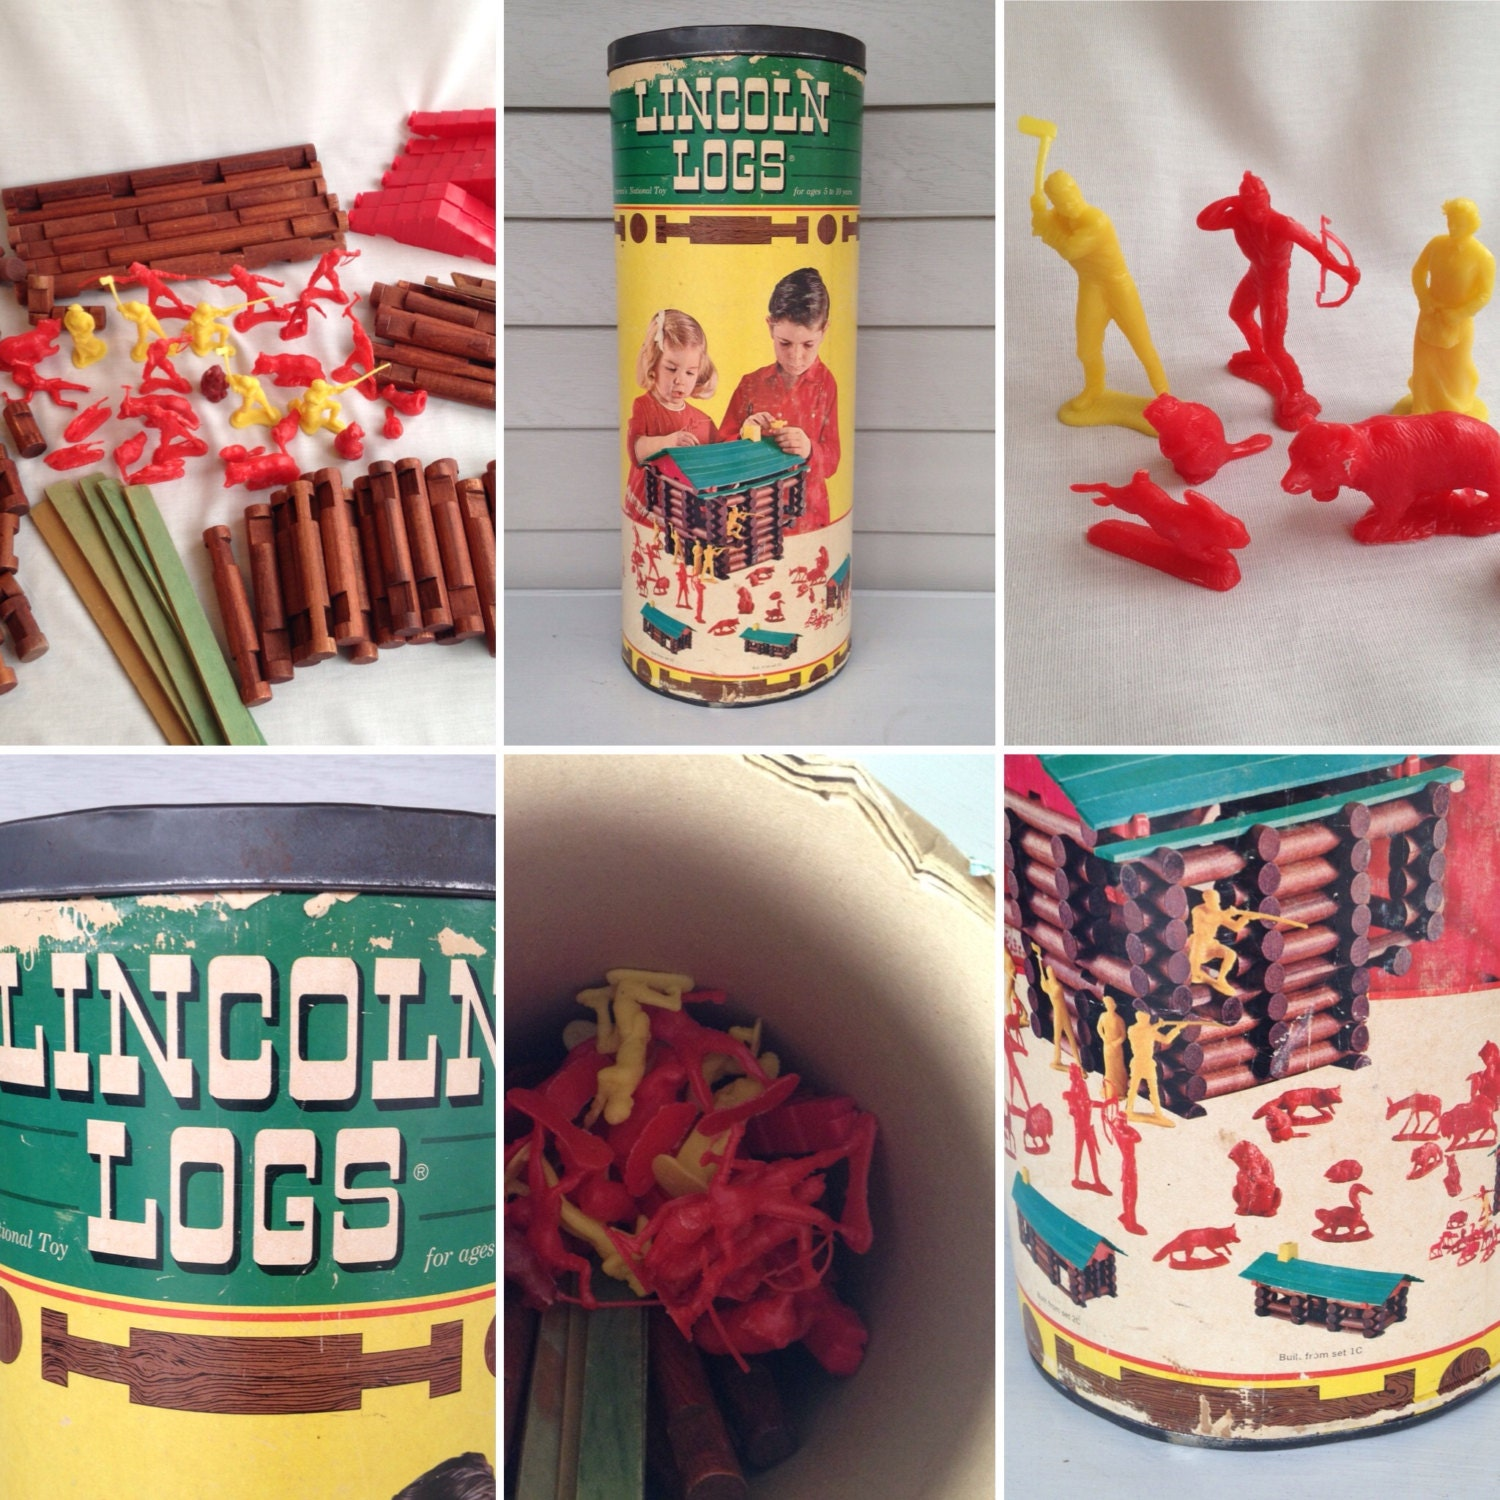 Original Set Of Lincoln Logs 1960s Retro Toy Made In Usa